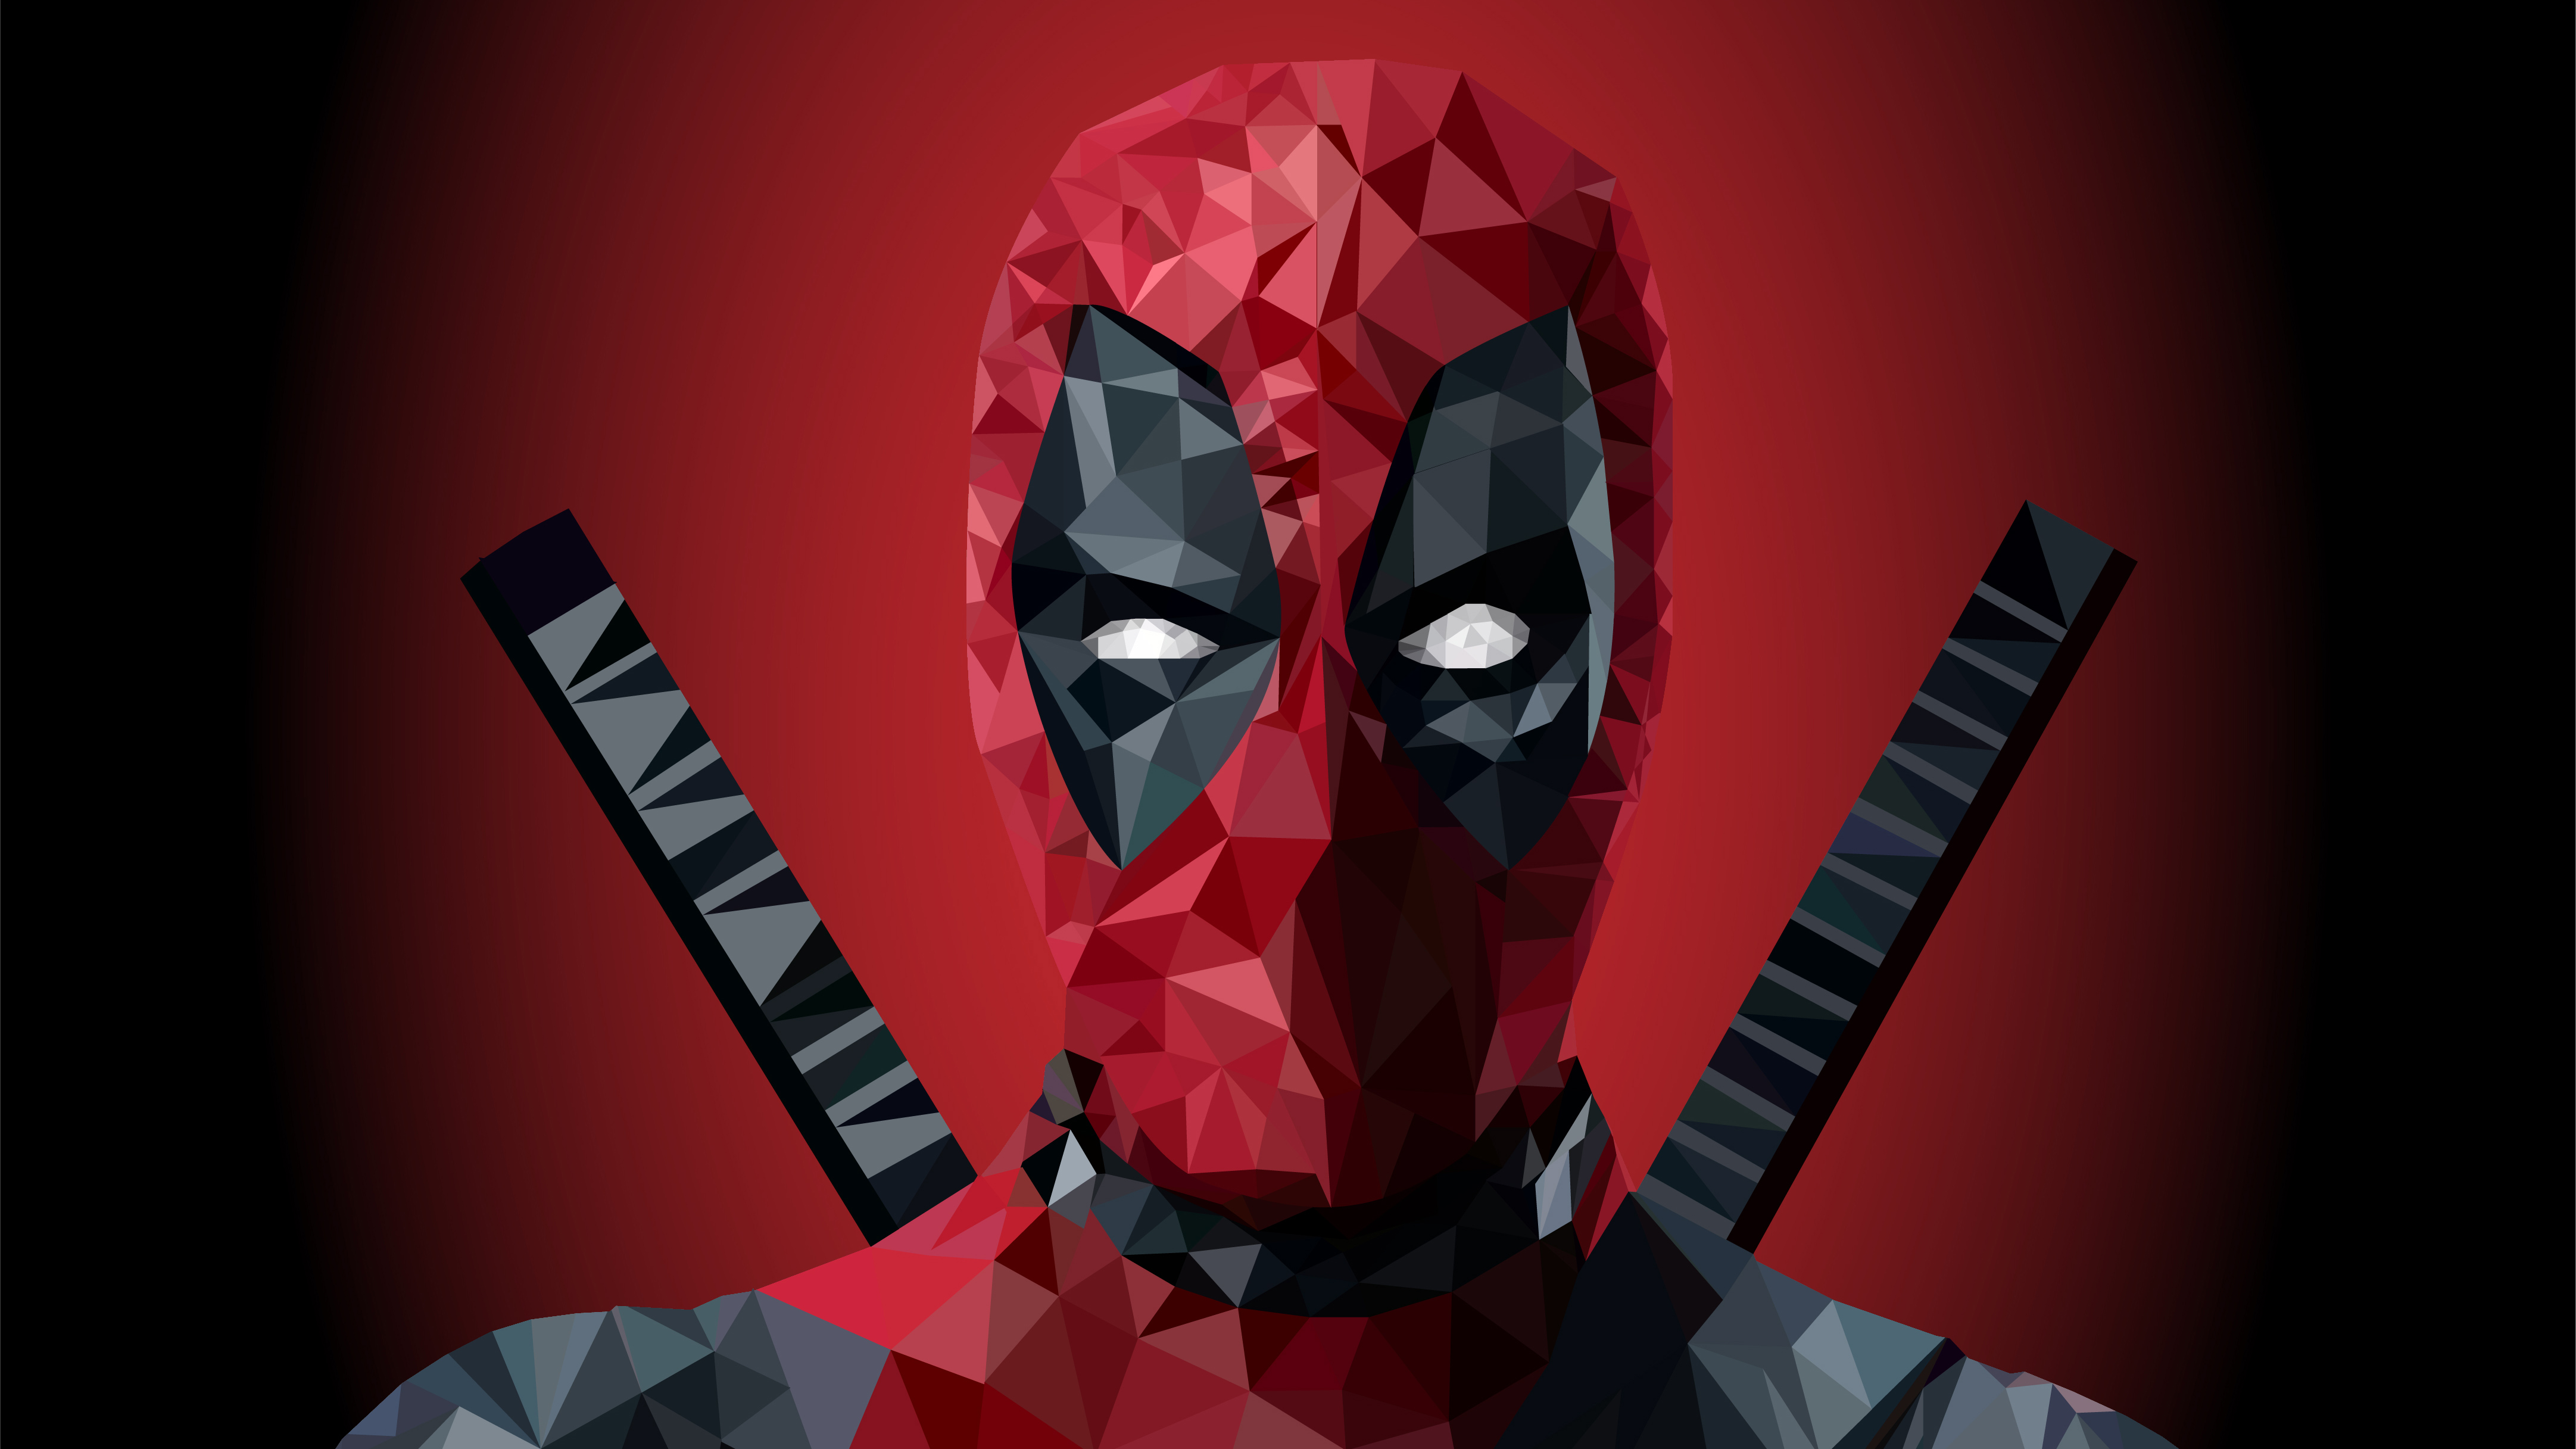 Deadpool Wallpaper 4k Posted By Ryan Thompson